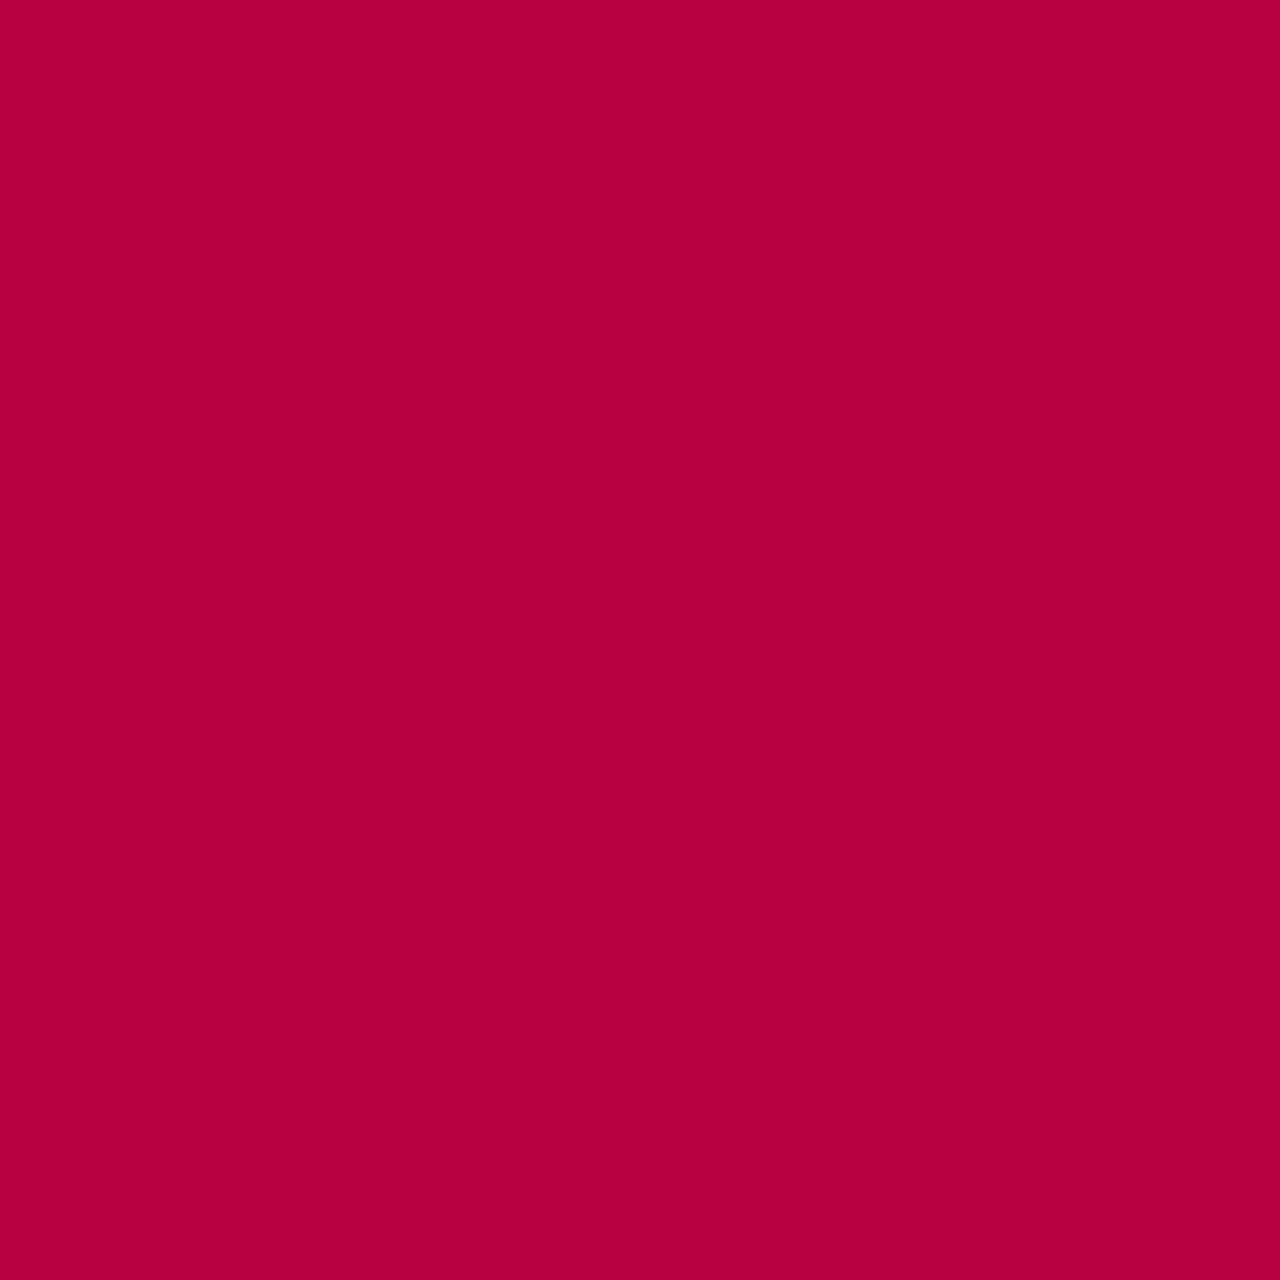 #0342 Rosco Gels Roscolux Rose Pink, 20x24""